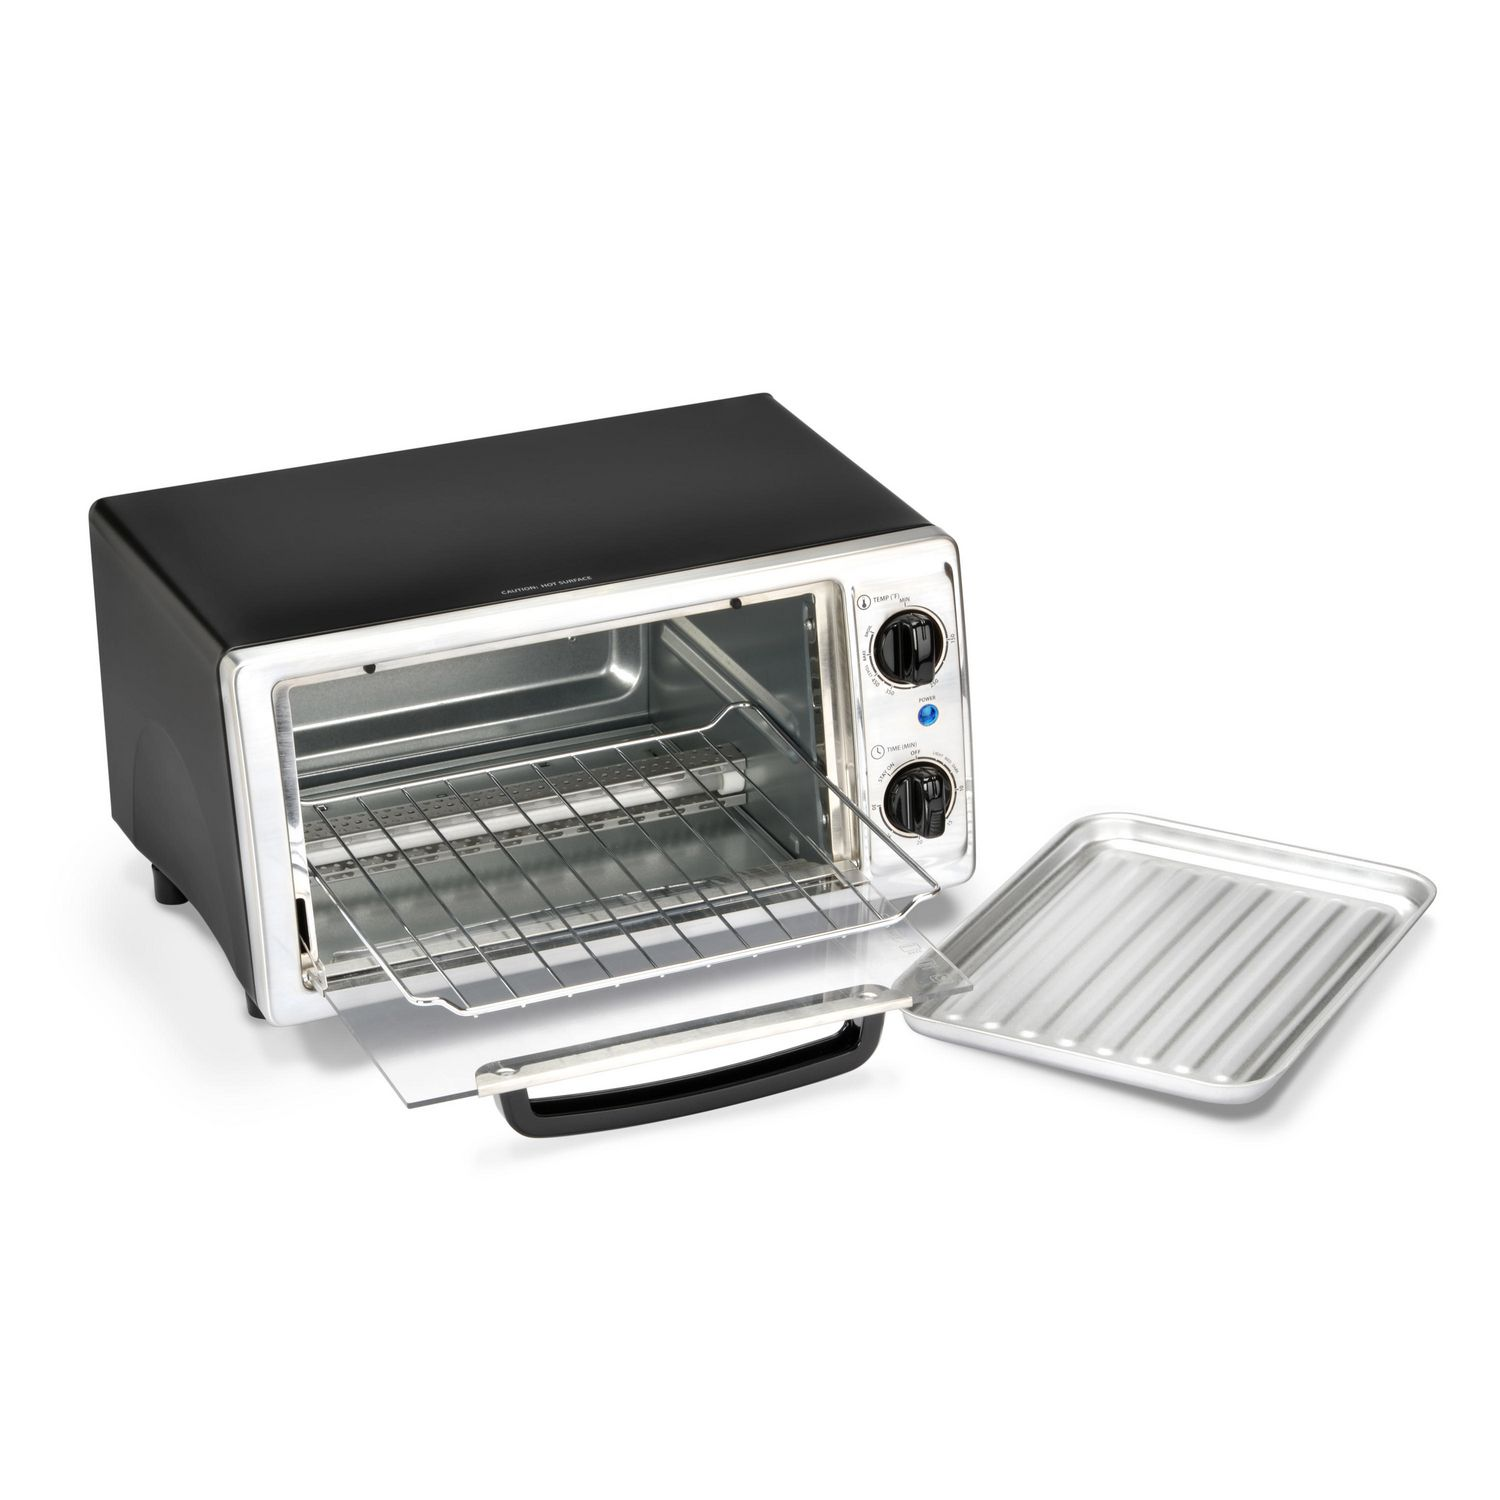 slice decker oven digital toaster small steel black convection stainless itm